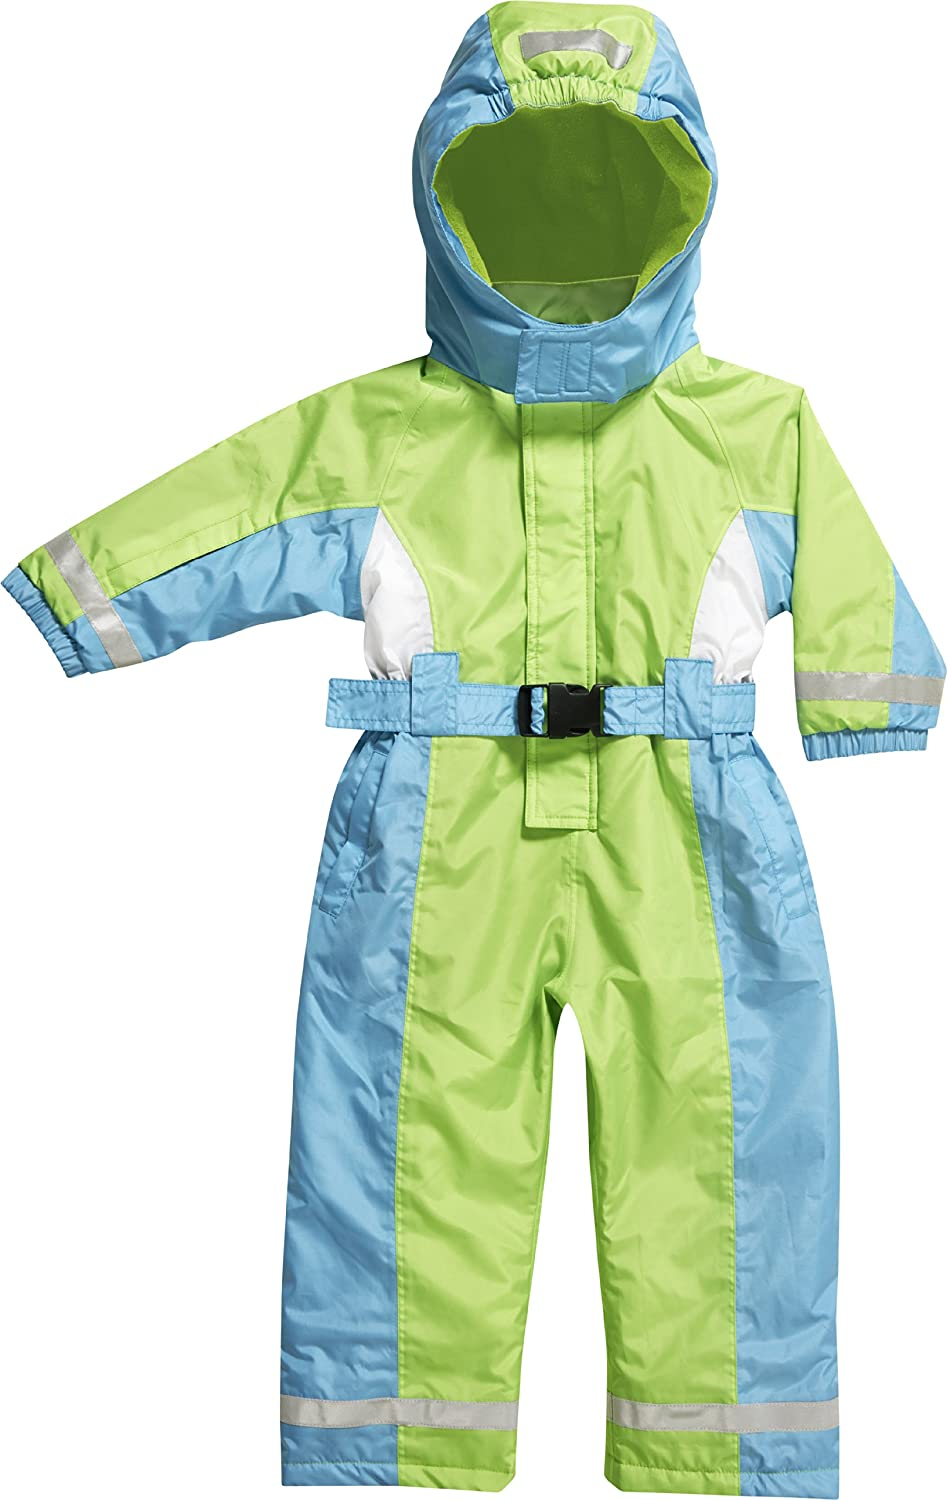 Playshoes Boys Waterproof and Breathable Overall Ski and Snowboarding Snowsuit 431100